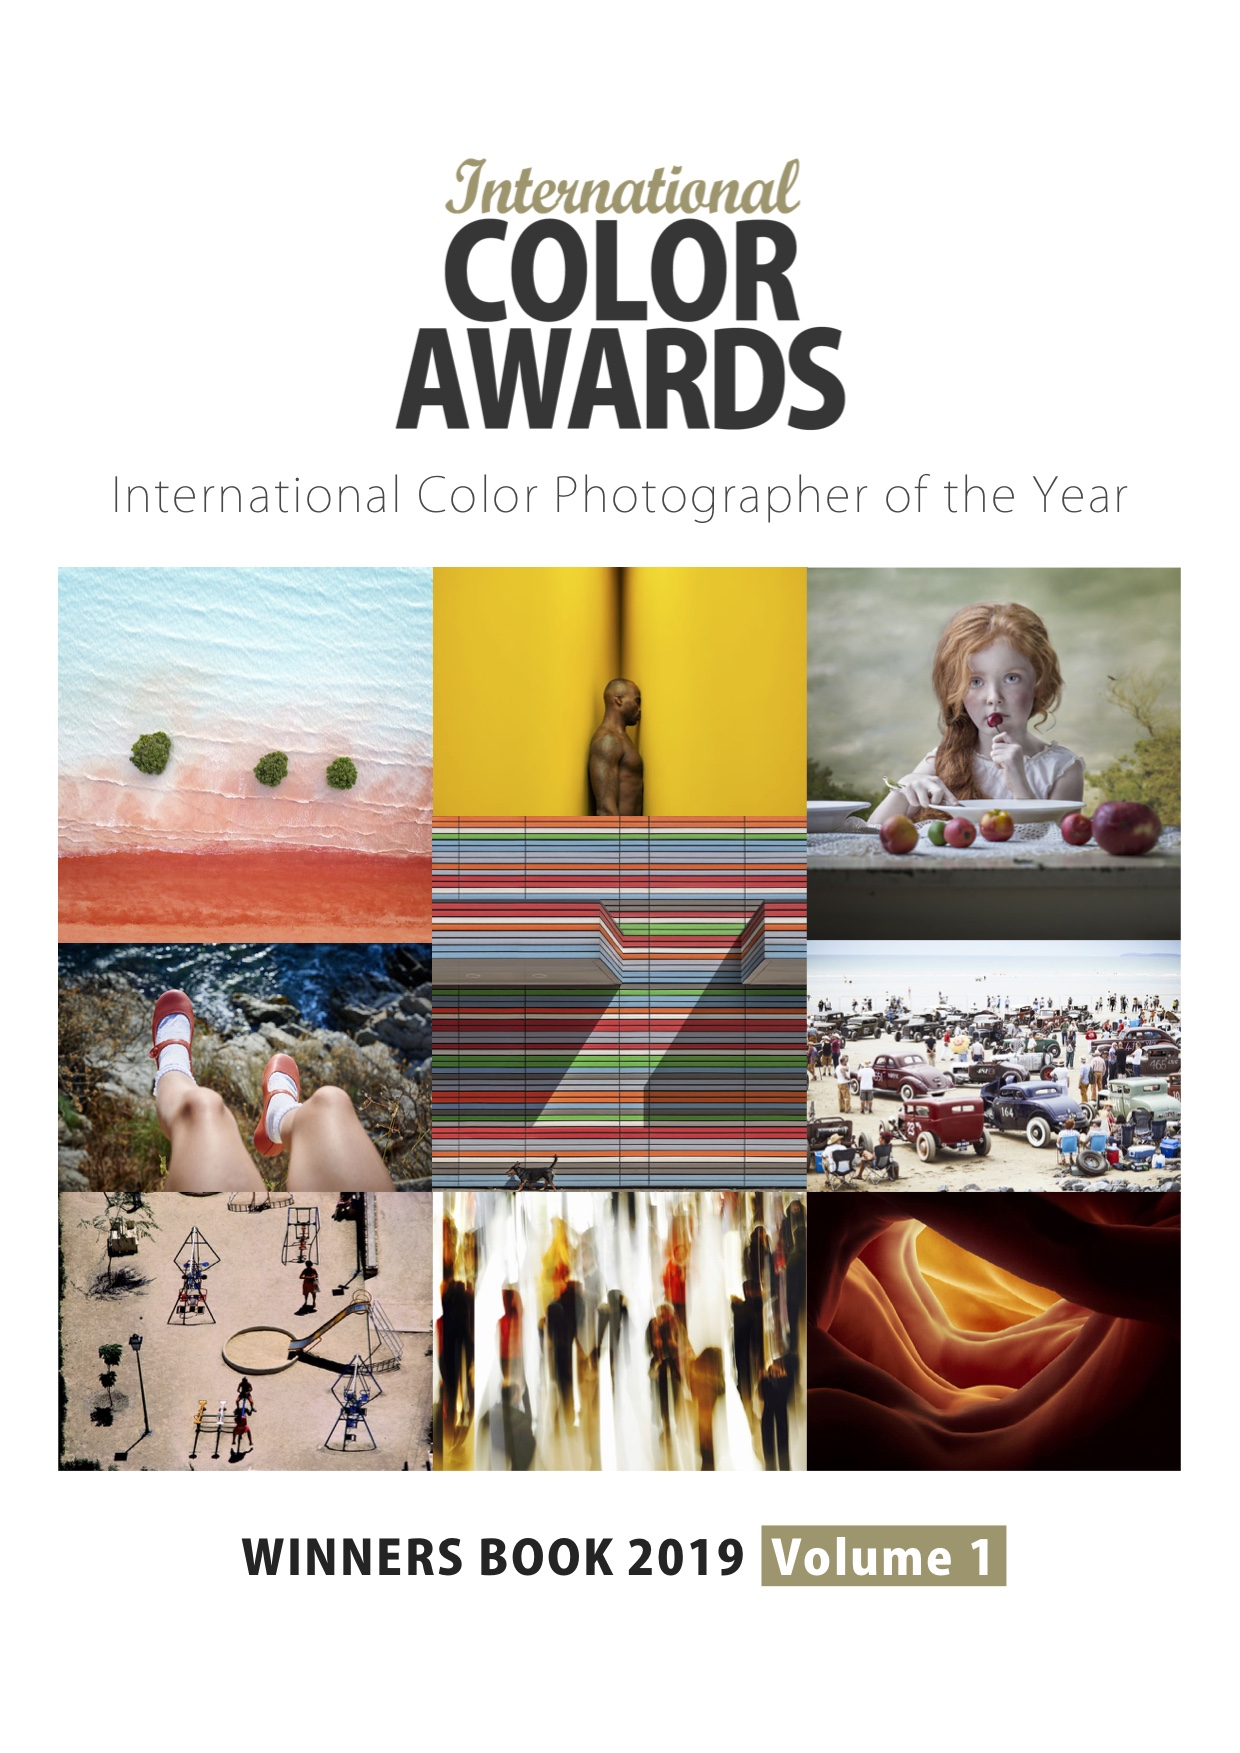 International Color Awards Vol 1